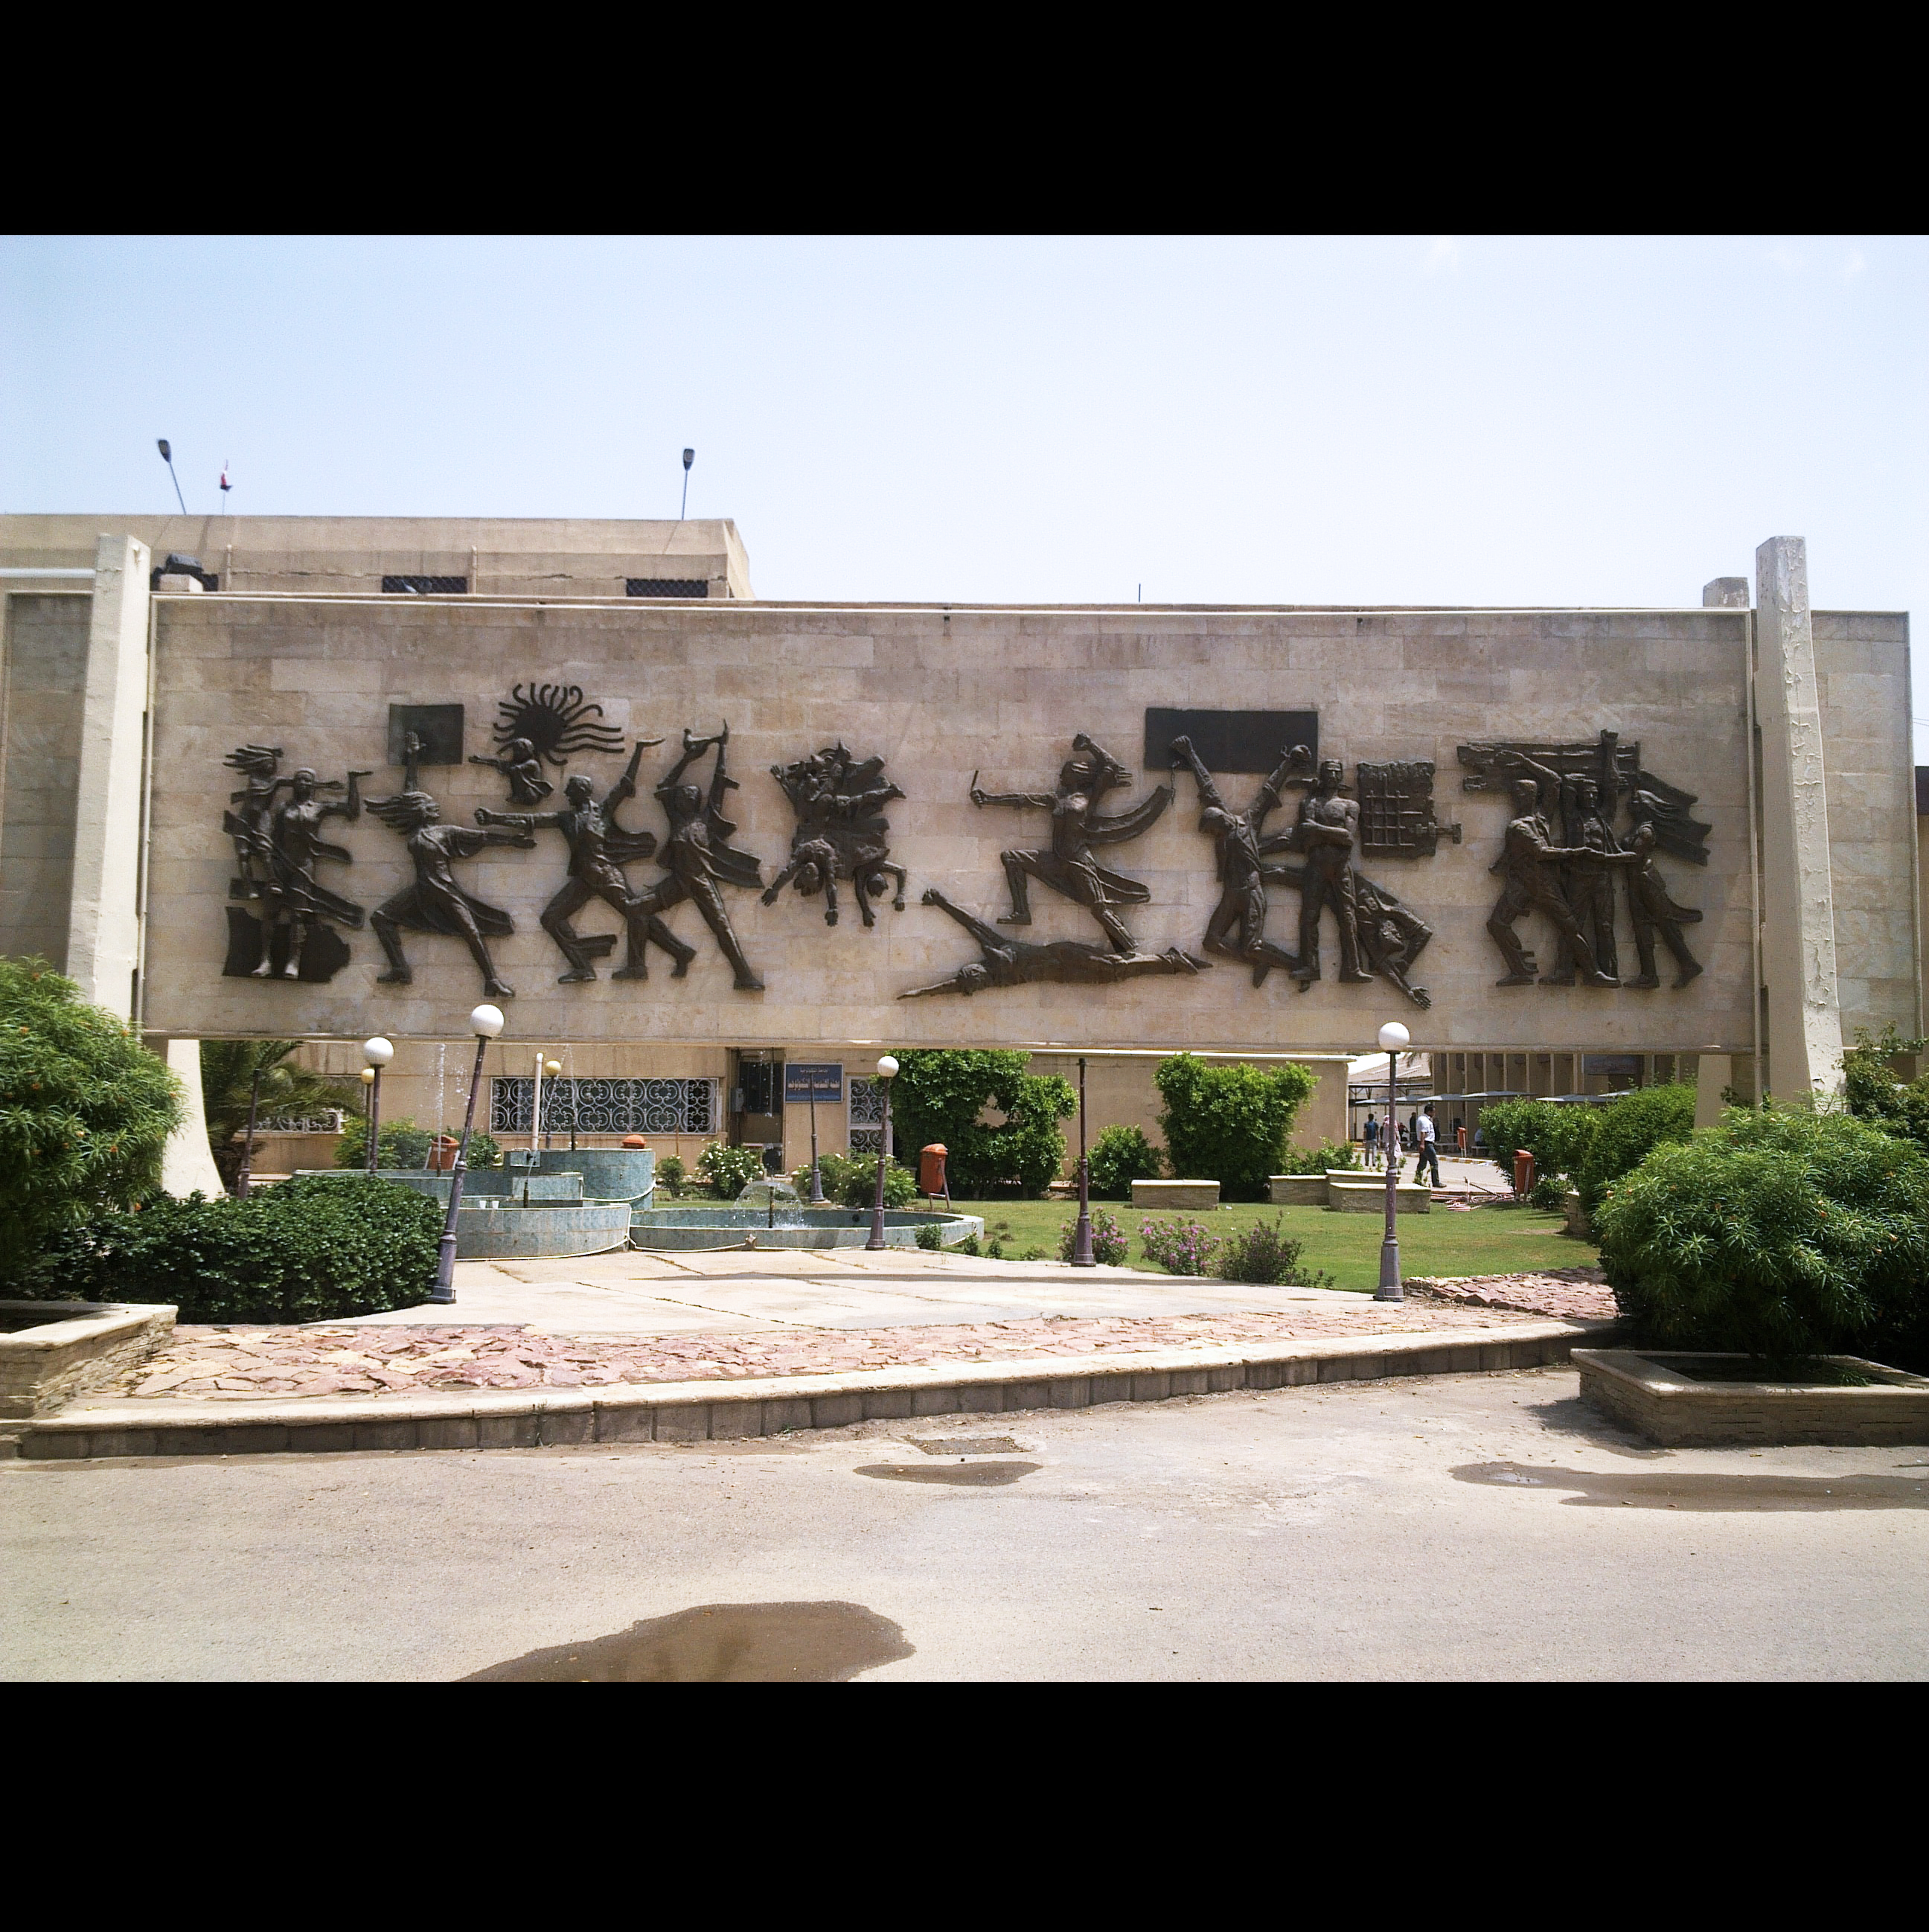 a_day___university_of_technology__baghdad____by_b451l4tor-d661pc8